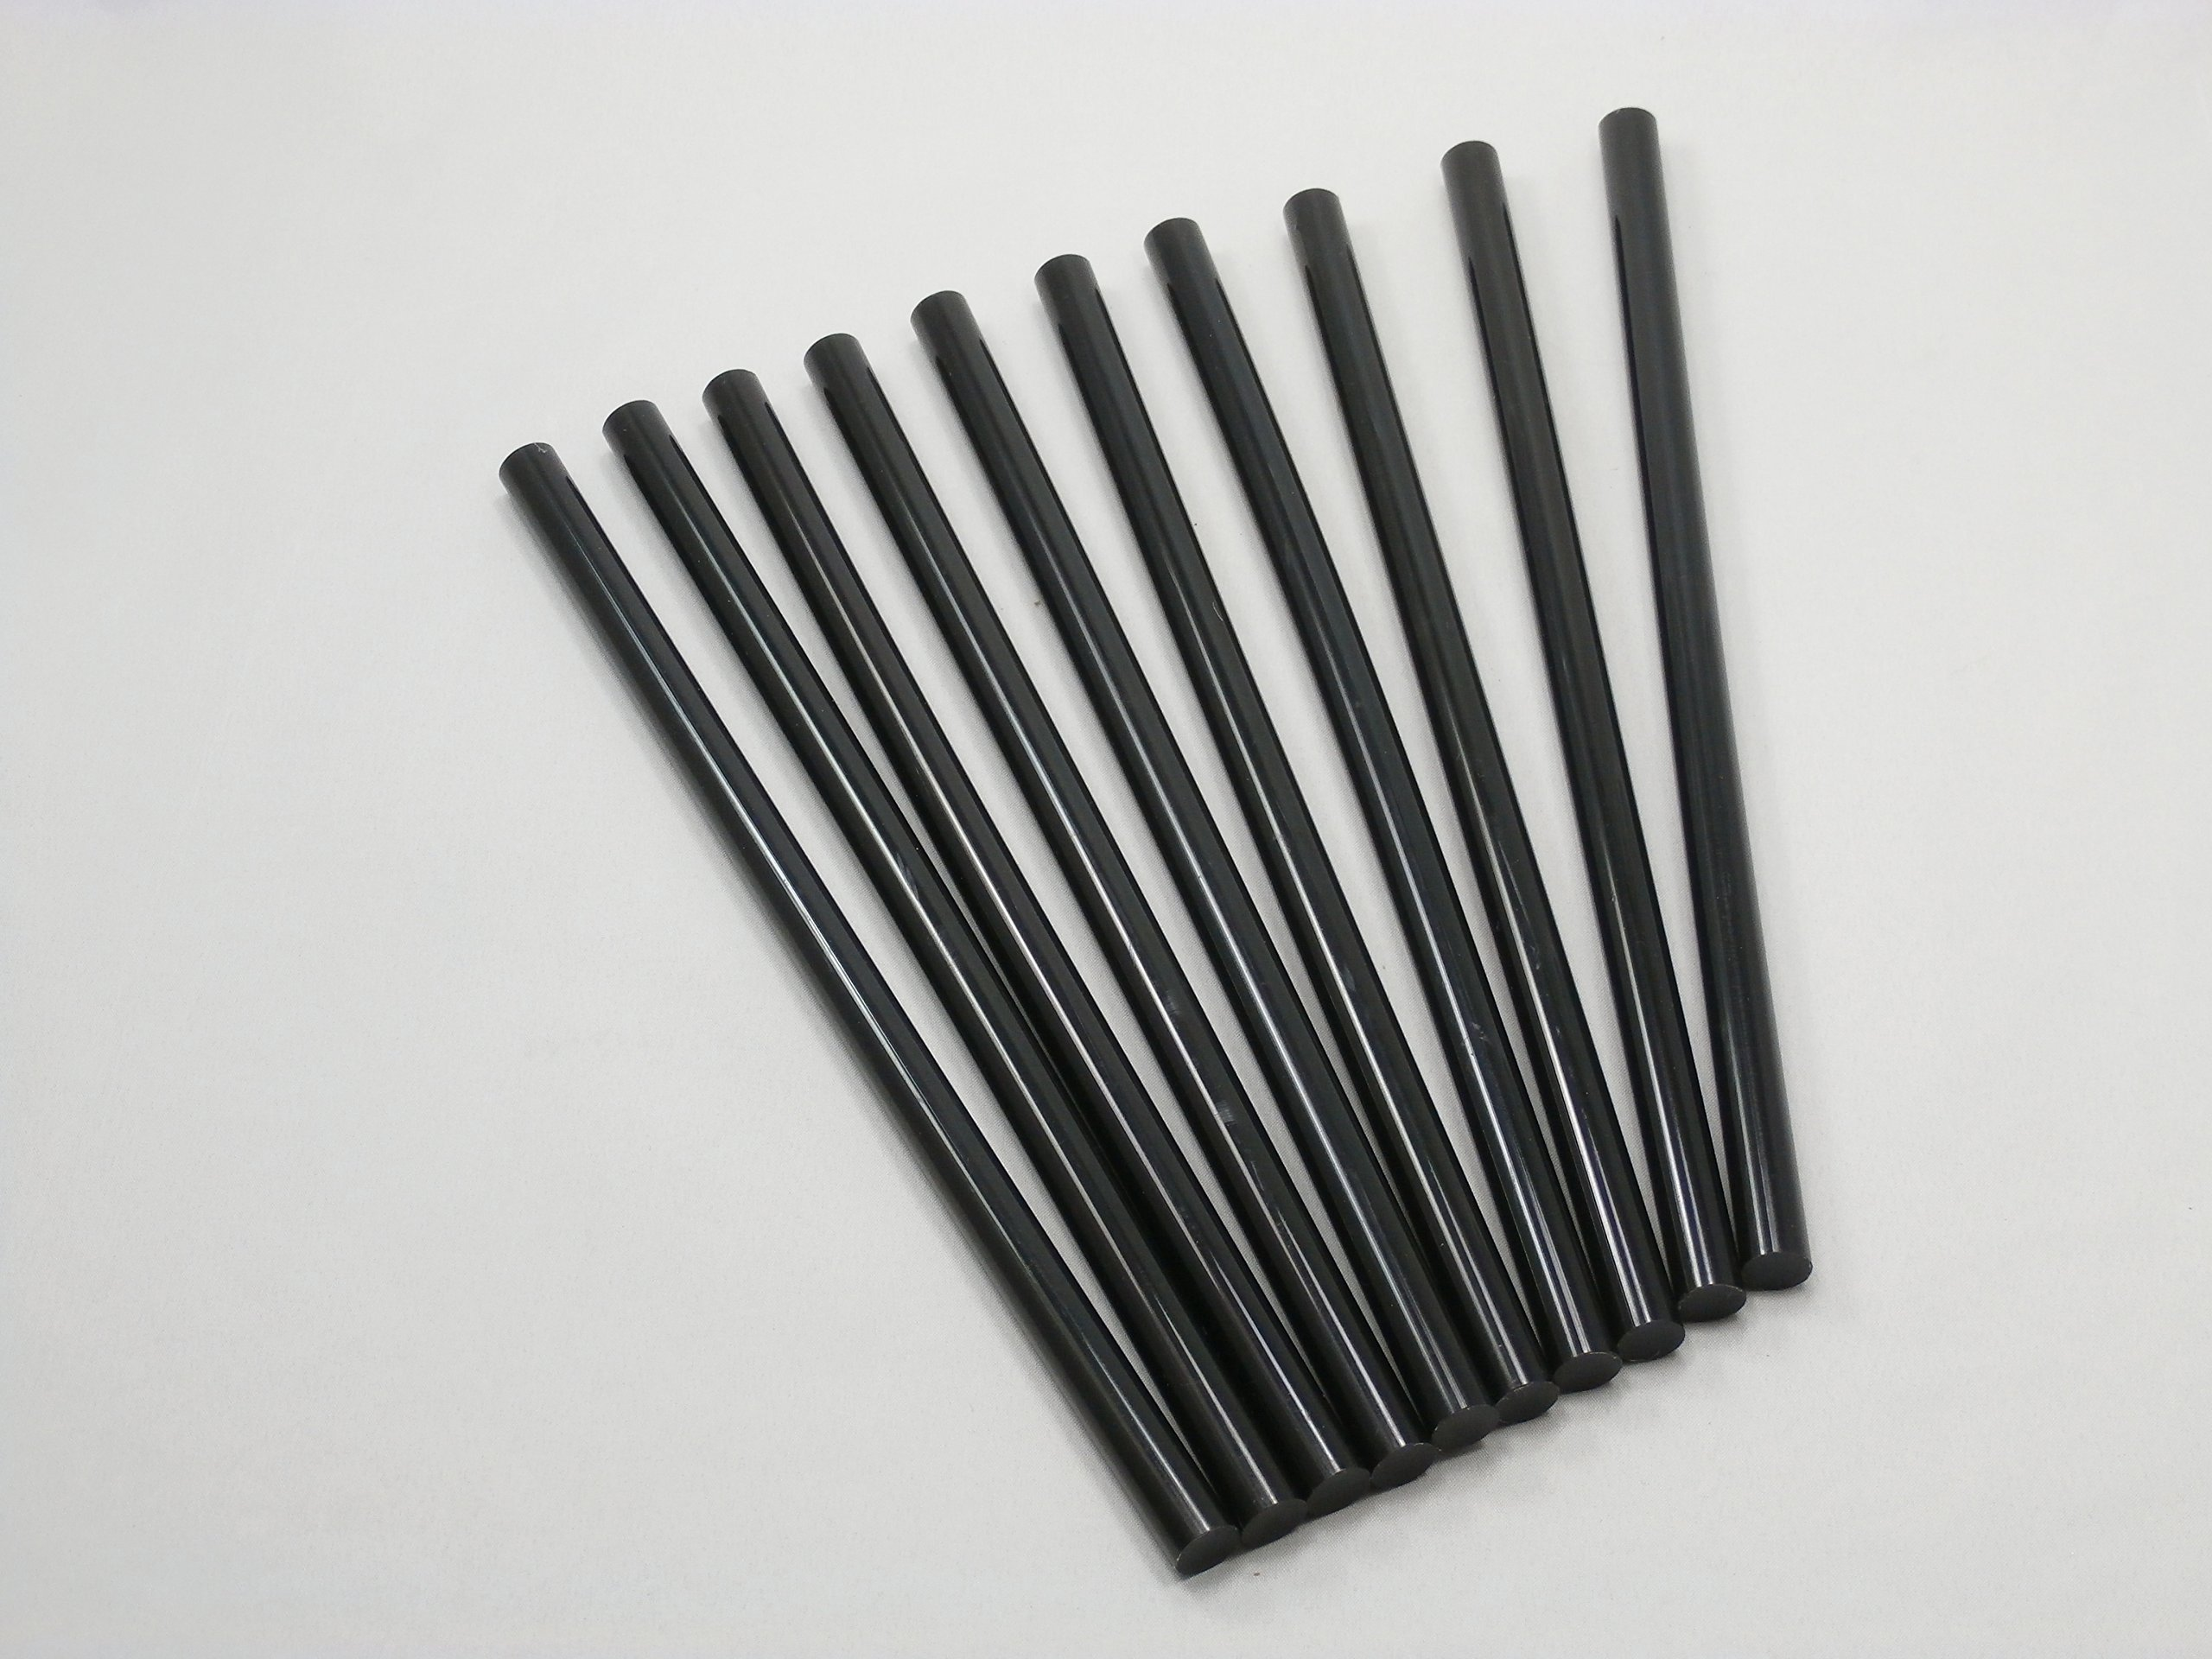 PDR Paintless Dent Removal Sticks 10 Black 7/16'' X 10'' sticks 11mm x 254mm